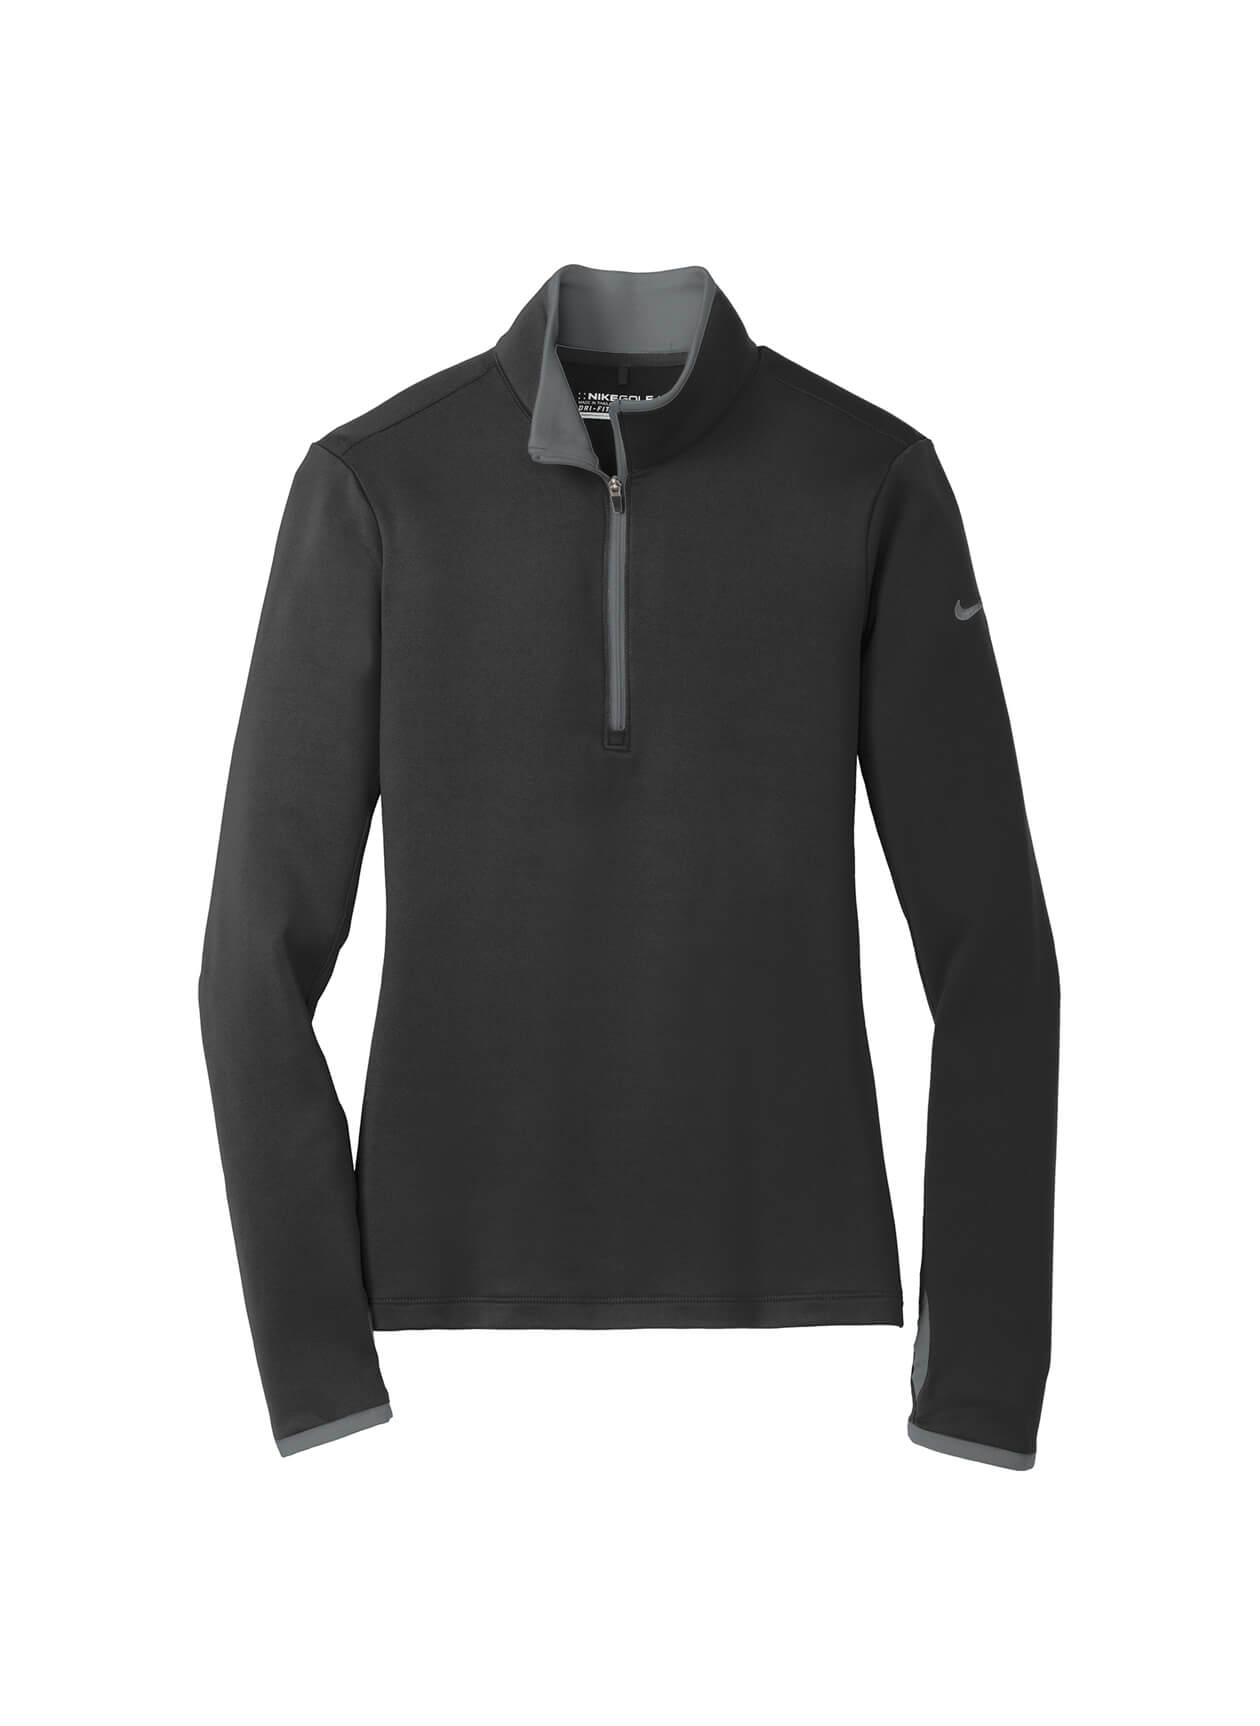 Nike Women's Dri-Fit 1/4 Zip